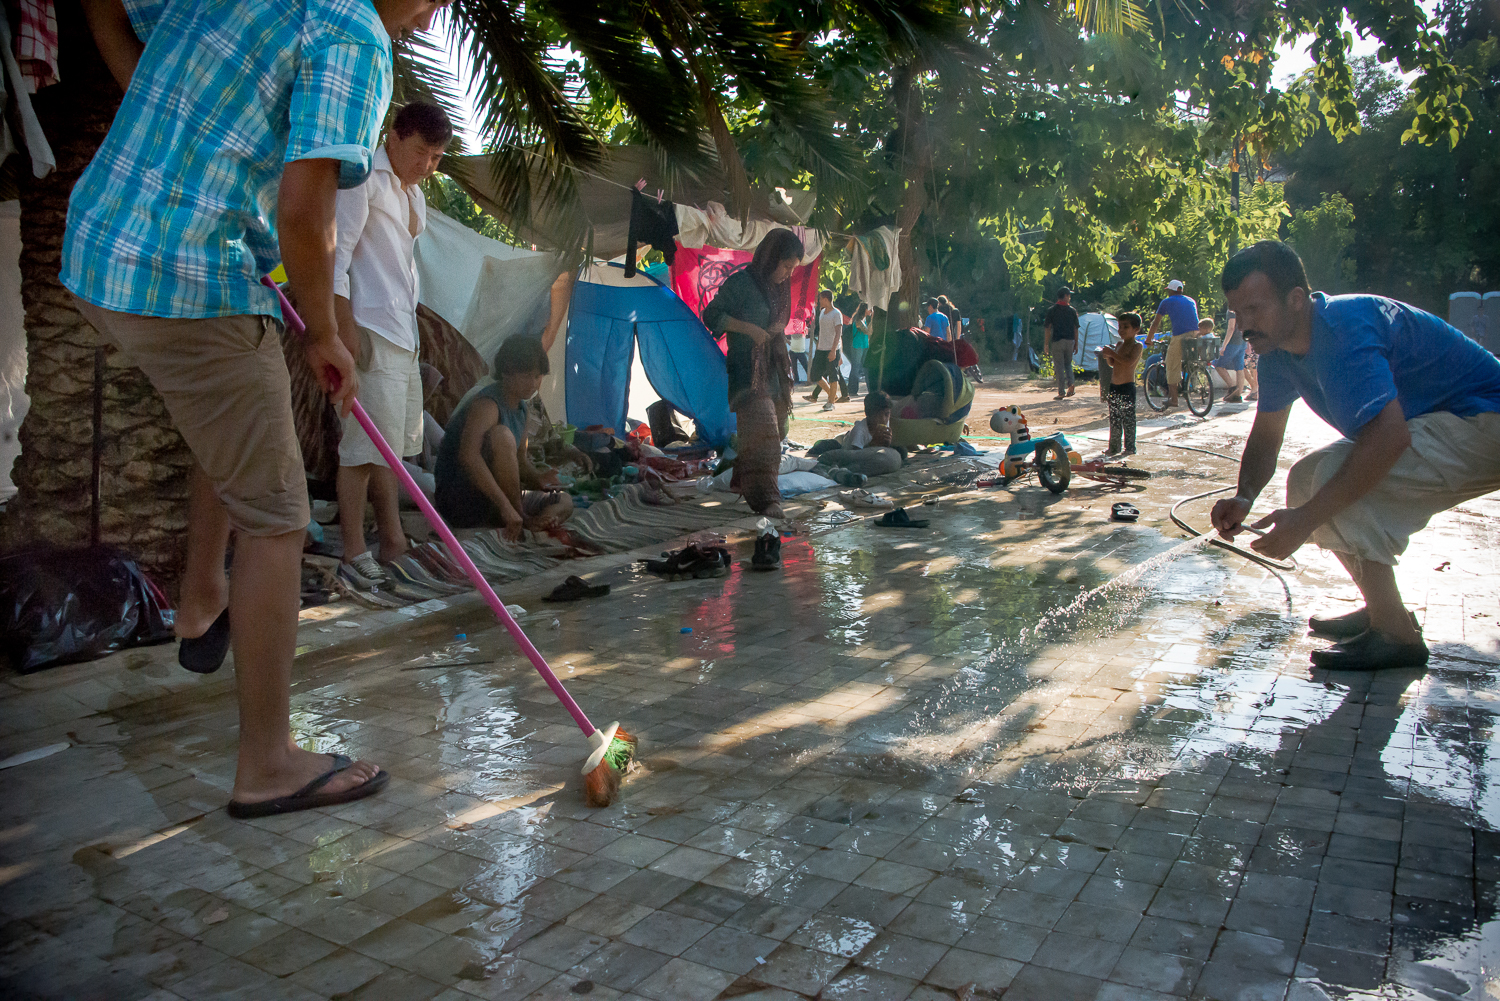 Refugees and volunteers clean the pathways of the camp. [Dimitris Sideridis/Al Jazeera]